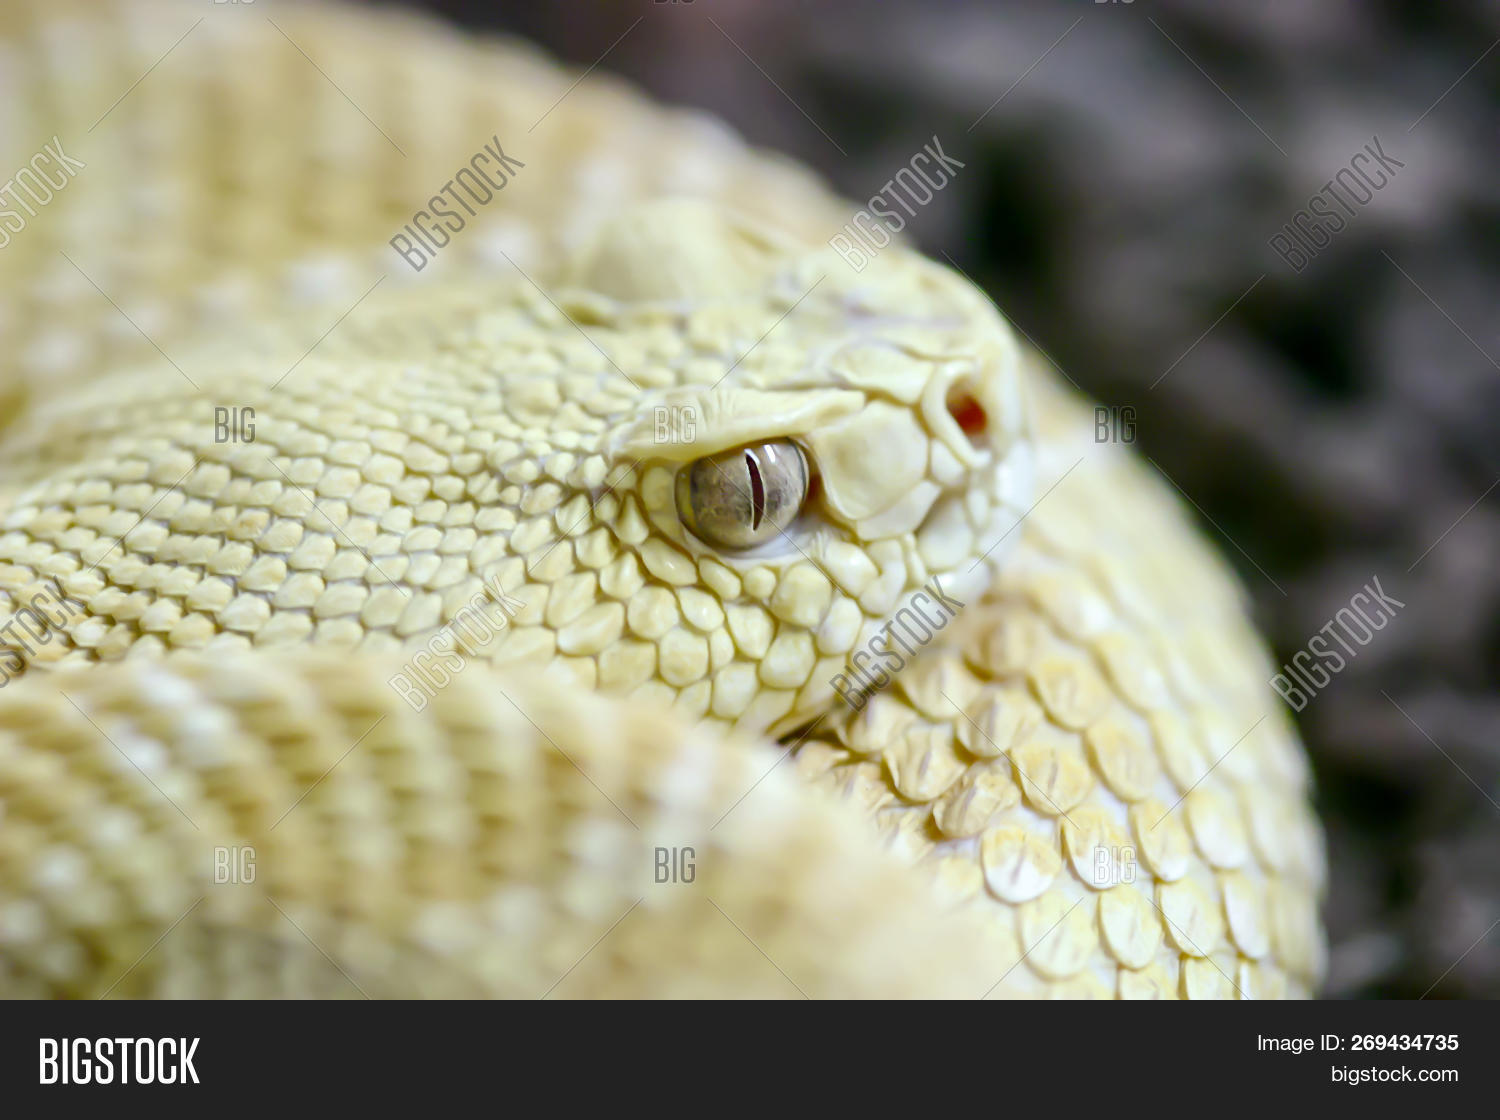 Snake Pictures To Color